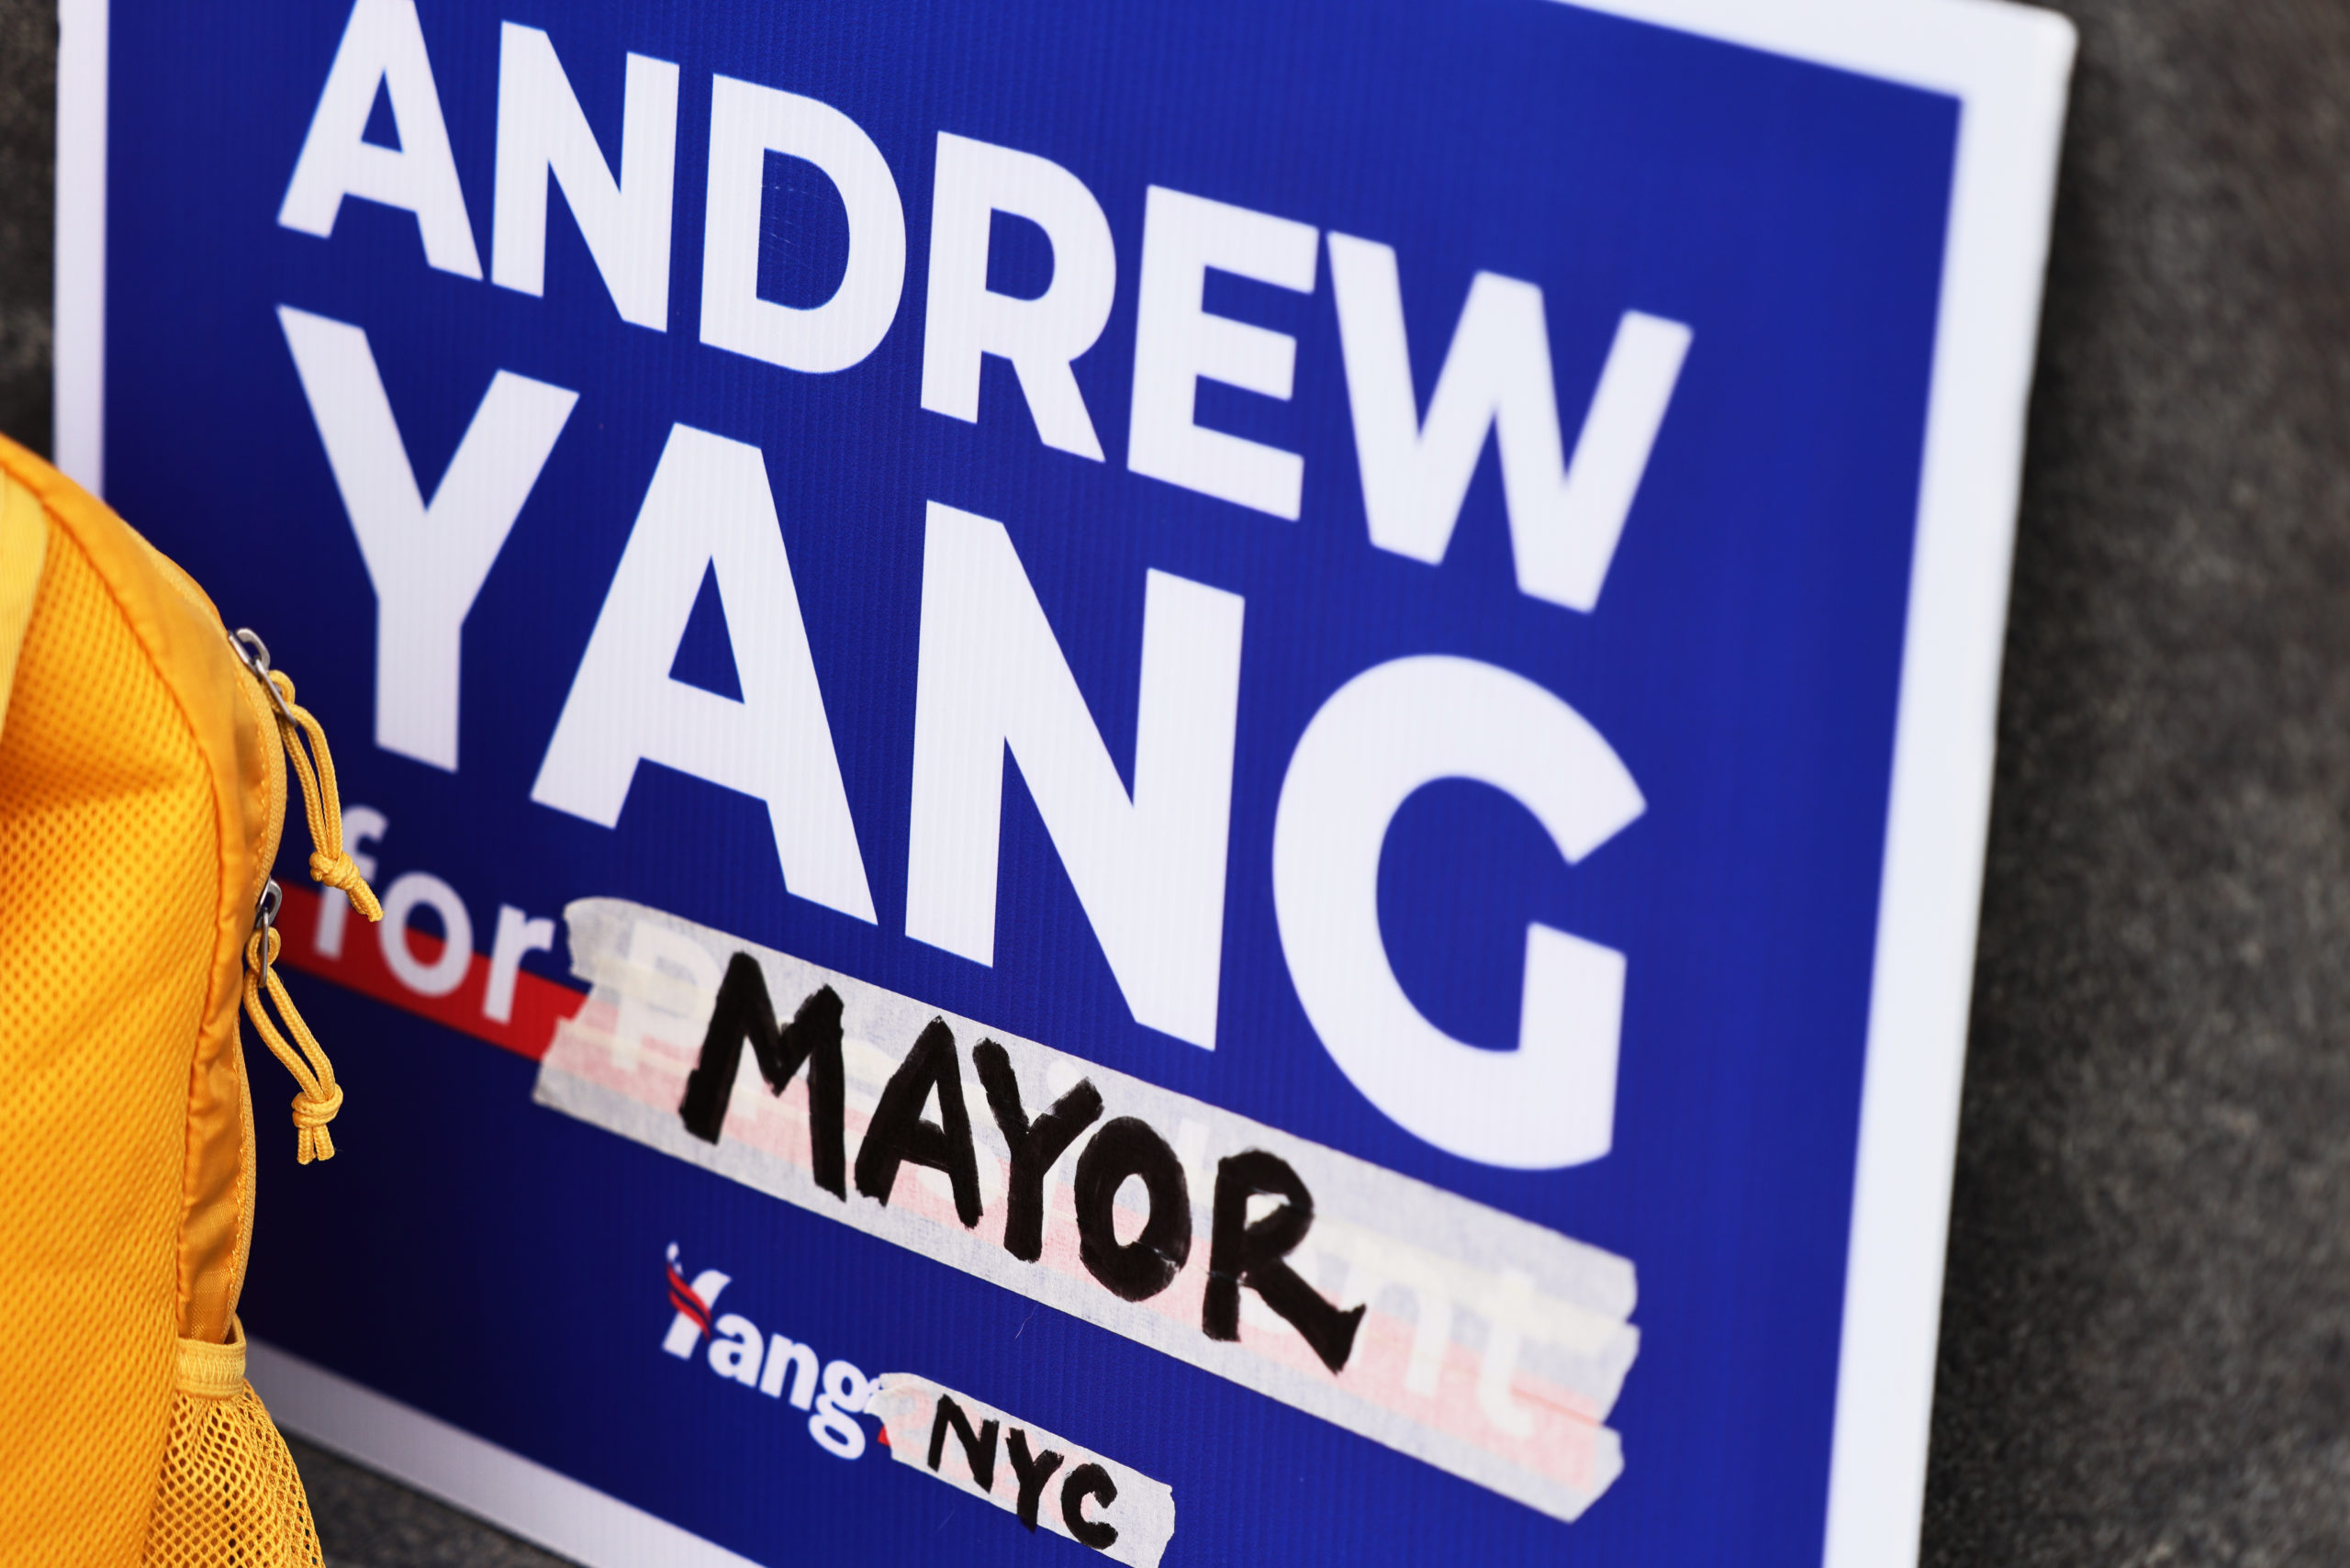 A former Andrew Yang presidential campaign sign is adjusted for his New York City mayoral campaign on Jan. 14. (Michael M. Santiago/Getty Images)